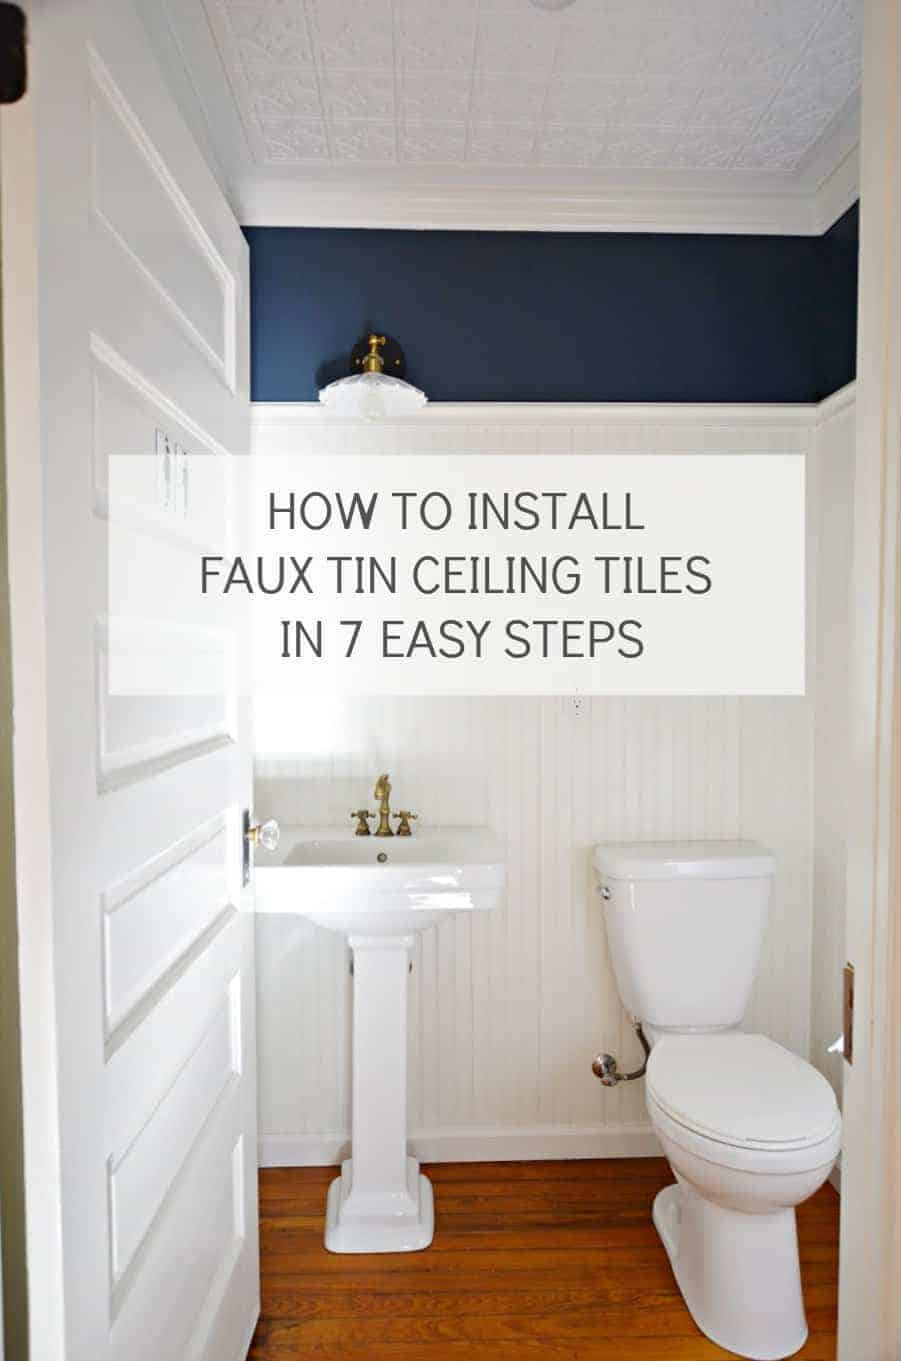 How to install faux tin ceiling tiles in 7 easy steps / According to the top interior designers, statement ceilings are one of the hot design trends of the year. Adding a faux tin ceiling certainly adds a wow factor to a small room such as this powder room. You can even use it to cover popcorn ceilings.